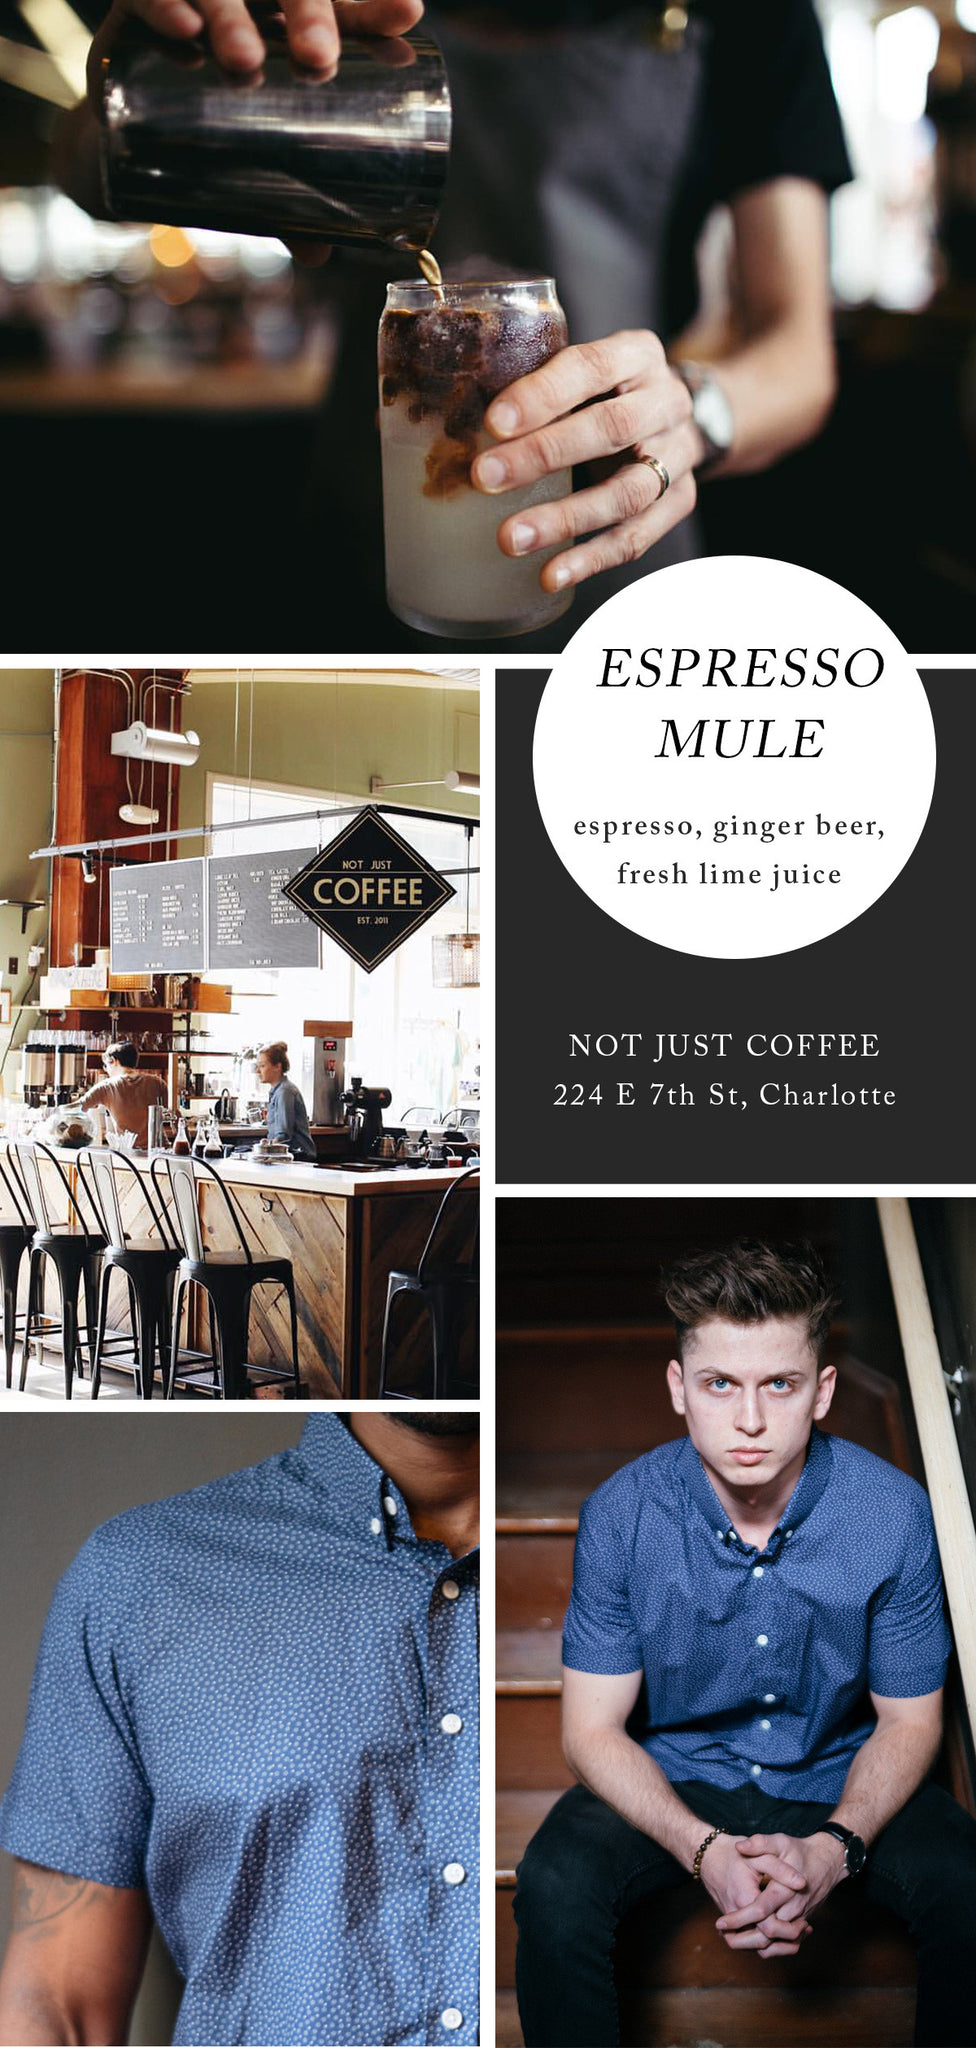 Espresso Mule from Not Just Coffee